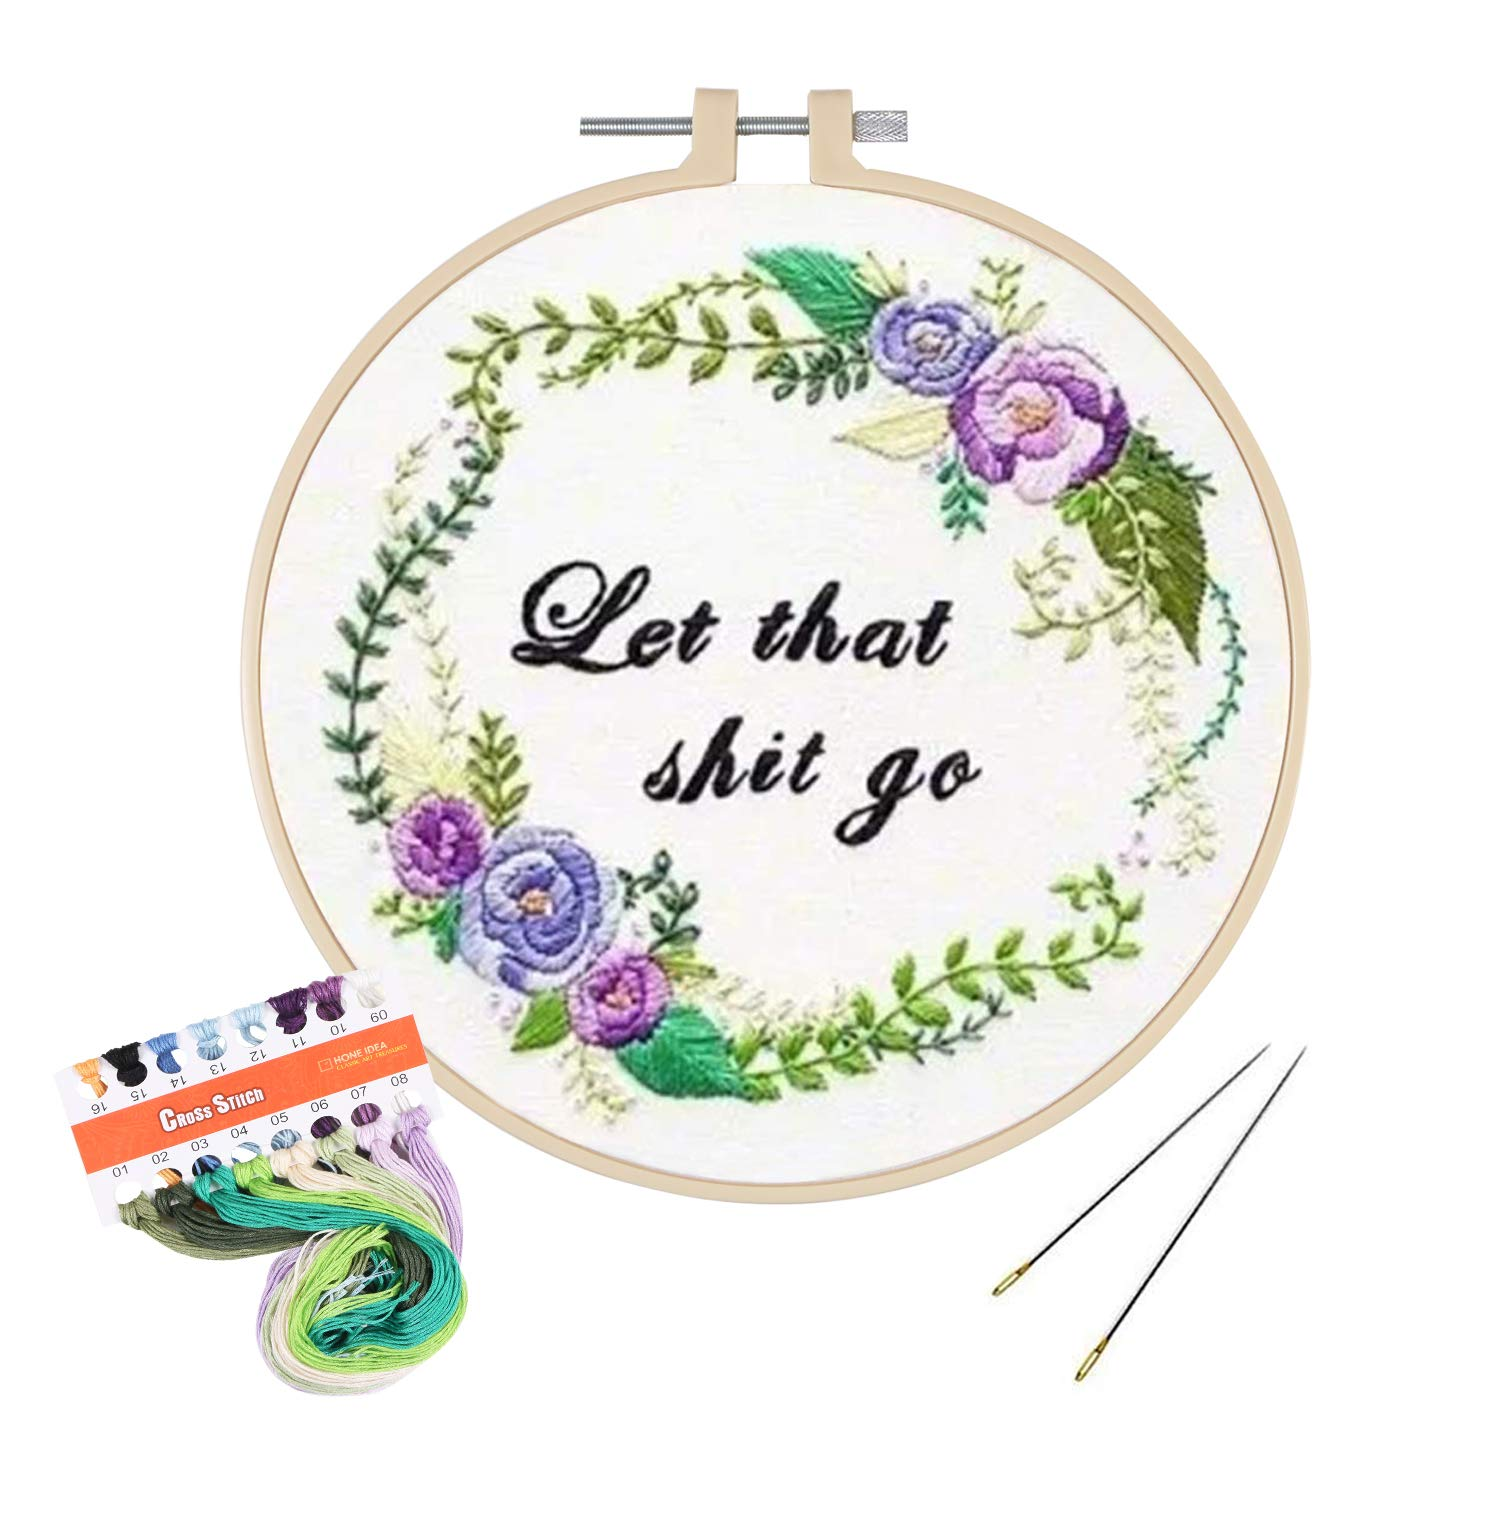 and Tools Kit,2 Pack of Garland/&Fragrant Unime Full Range of Embroidery Starter Kit with Pattern Cross Stitch Kit Including Embroidery Cloth with Color Pattern Color Threads Bamboo Embroidery Hoop